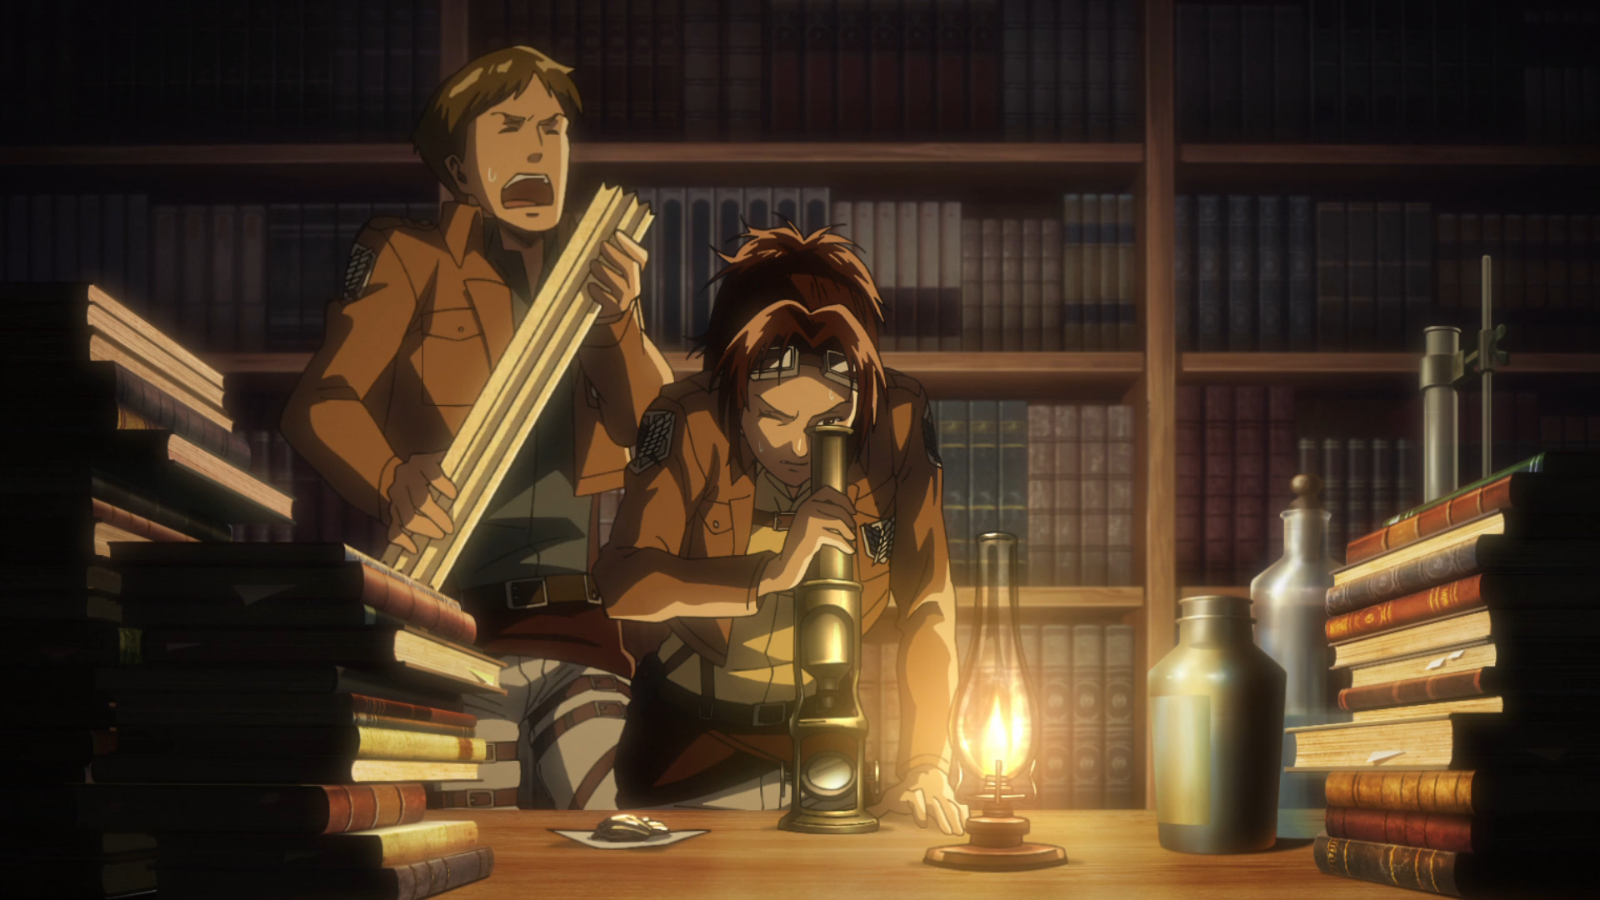 Image - Moblit harangues Hange.png   Attack on Titan Wiki   FANDOM powered by Wikia